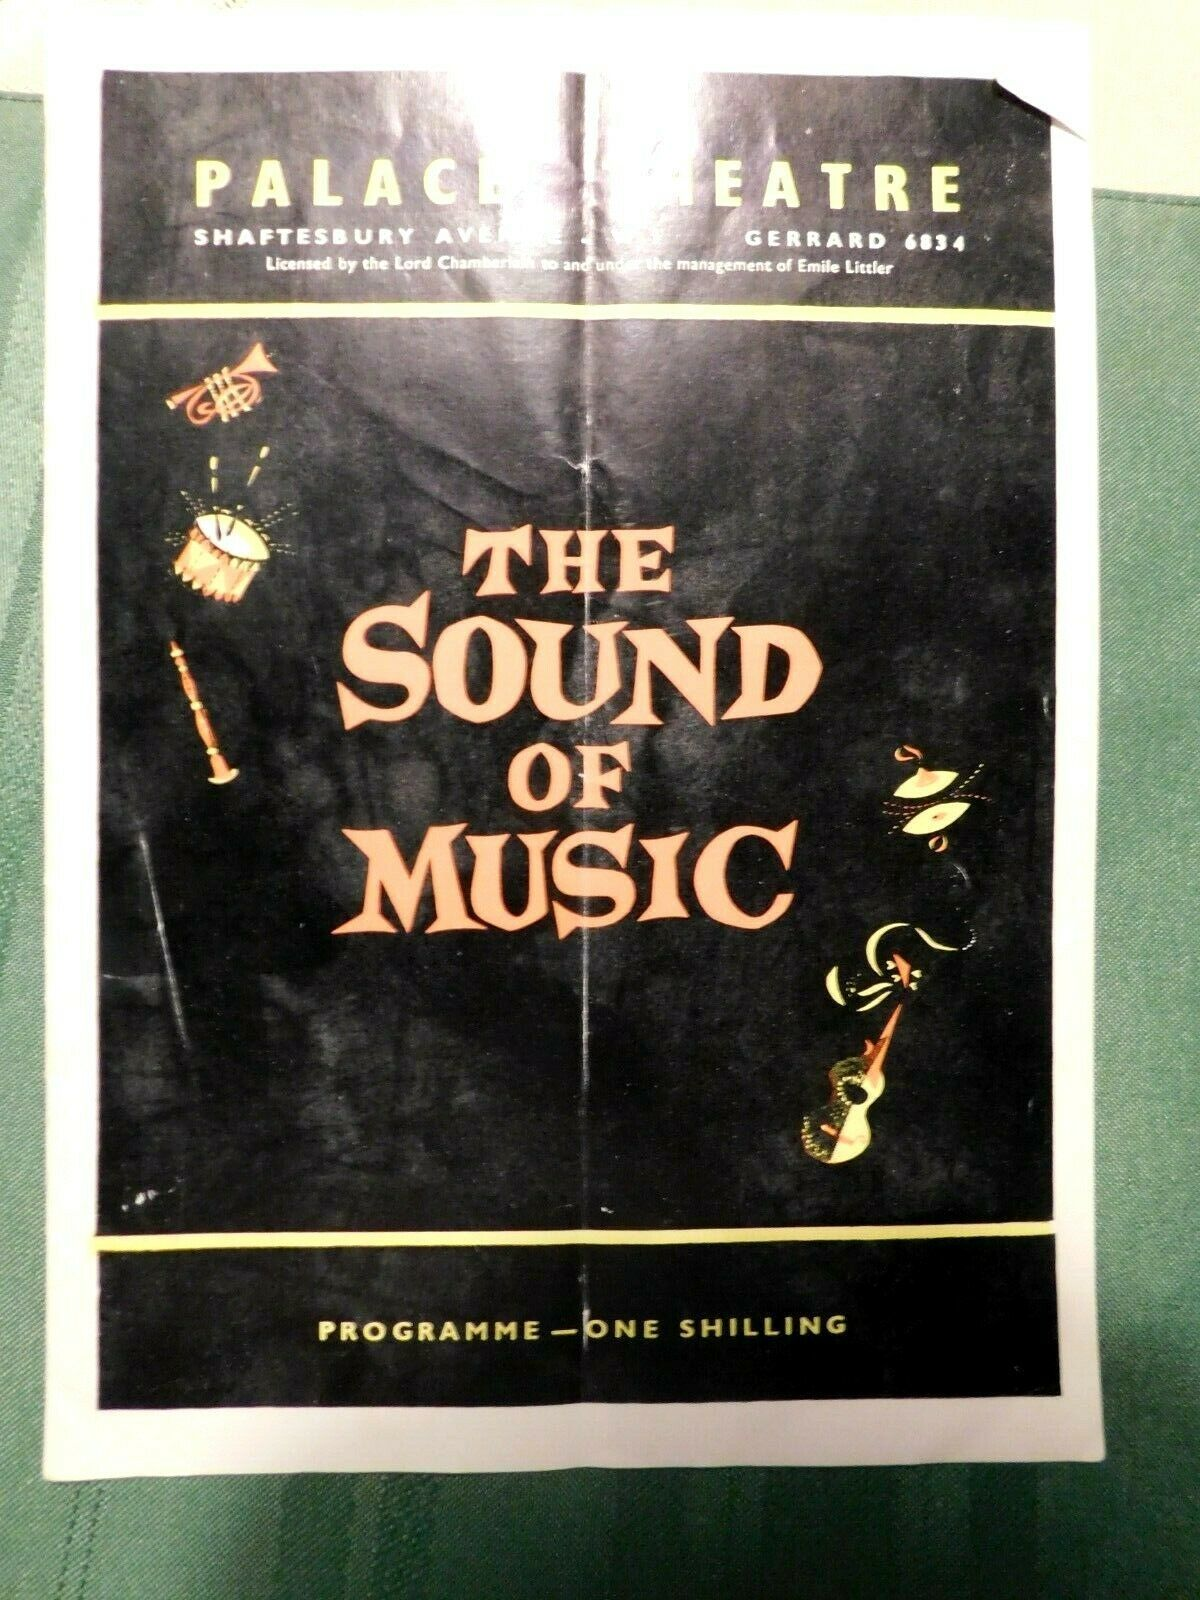 Primary image for Vtg The Sound of Music Palace Theatre Programme Program Playbill Shaftesbury Ave